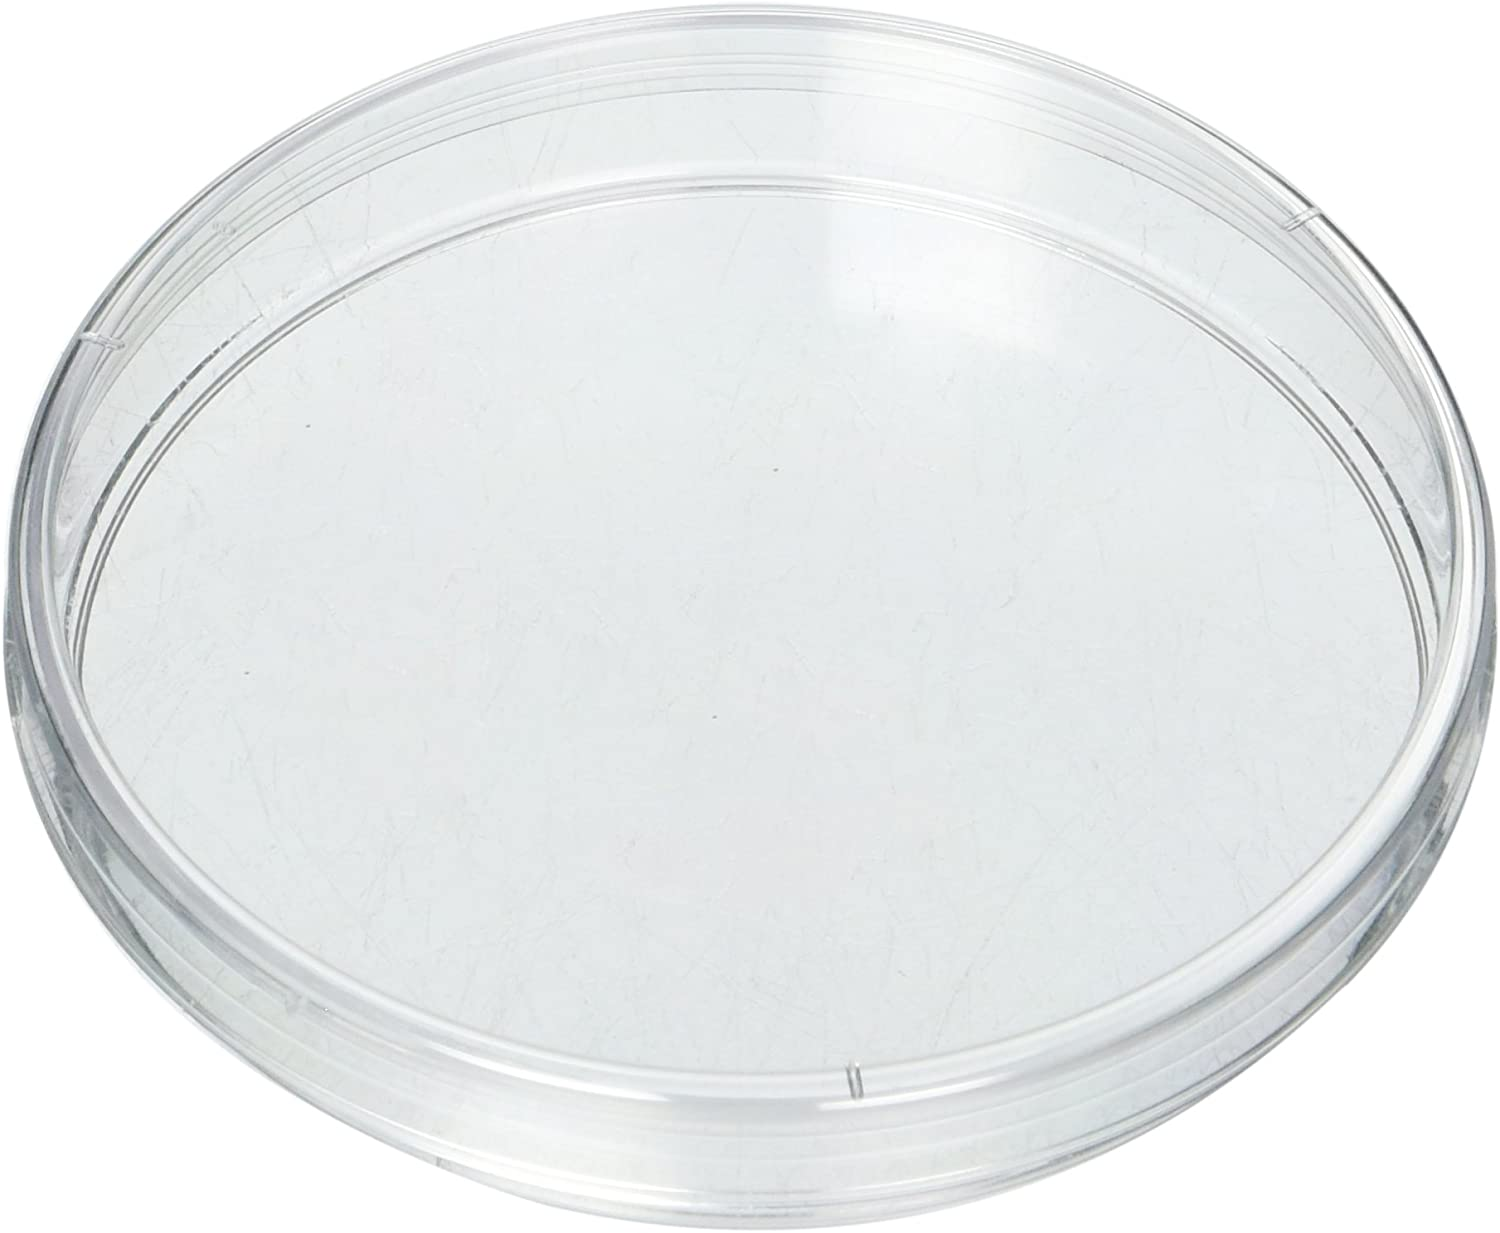 100mmx15mm Sterilized Petri Dishes with Lids,10 Pack